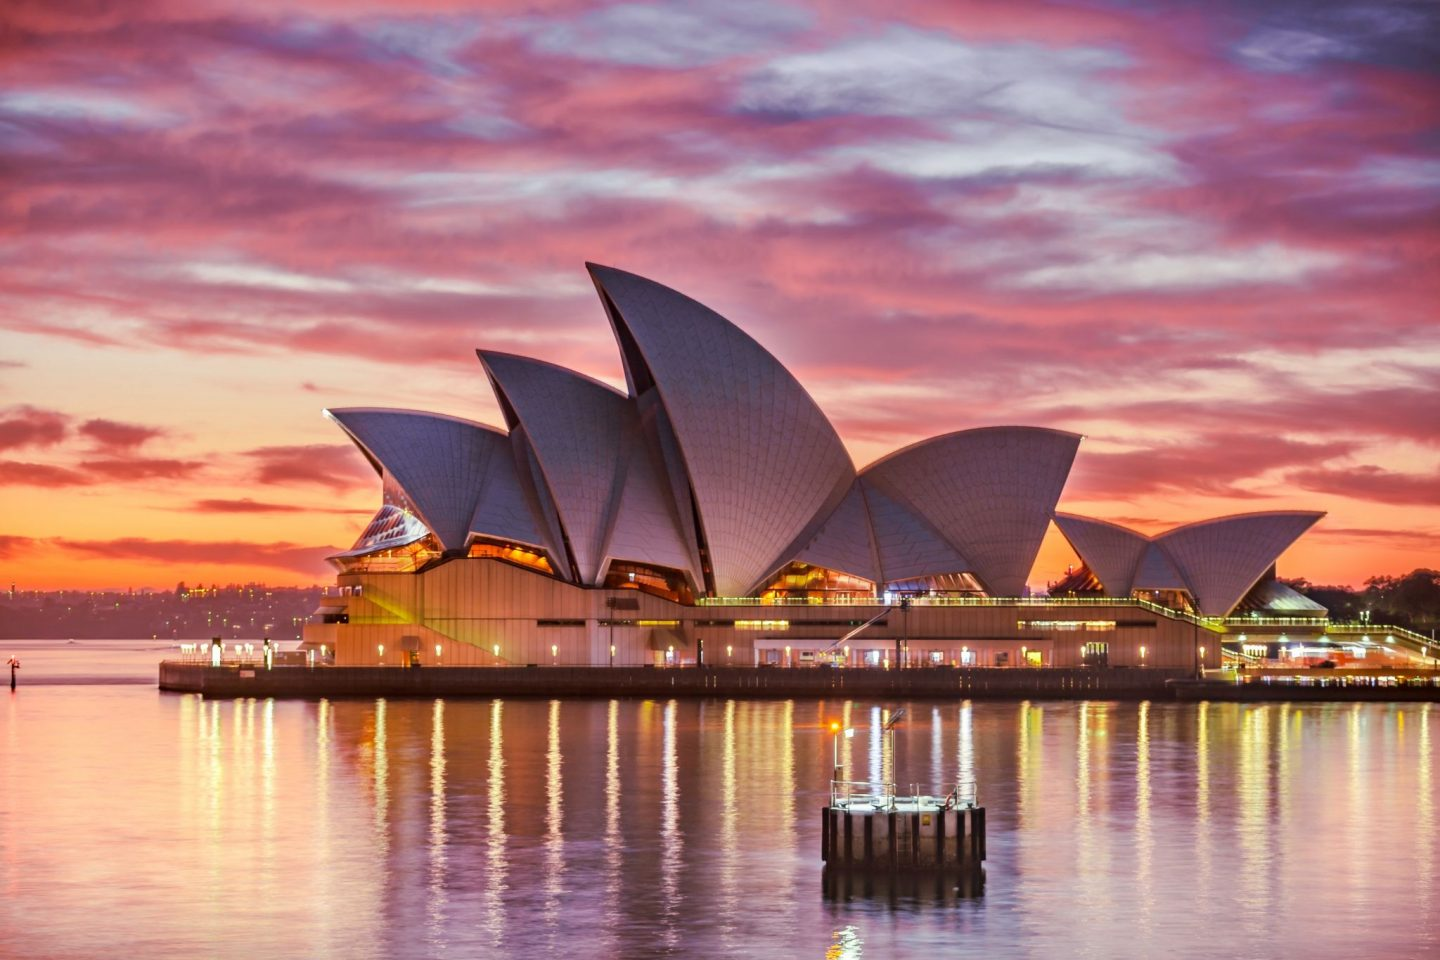 3 UNMISSABLE SIGHTS IN AUSTRALIA